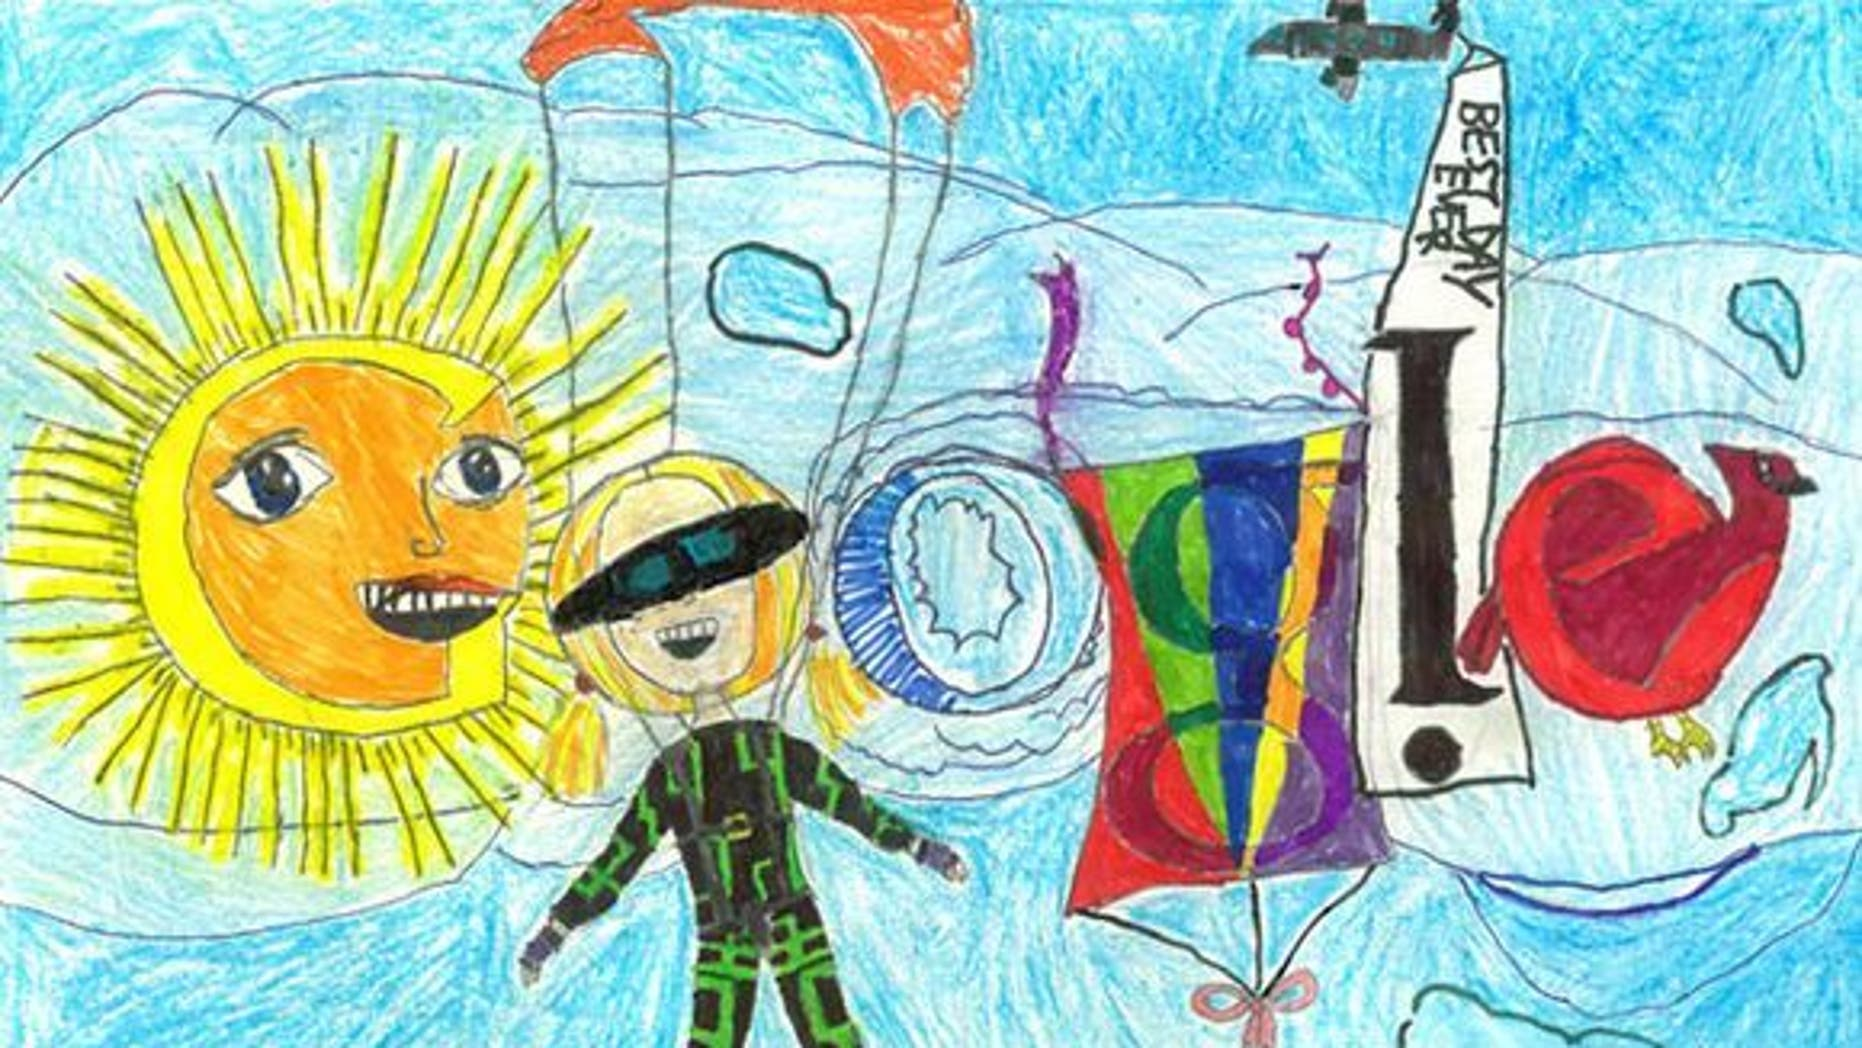 """Google 4 Doodle semifinalist Hope S. imagines her """"best day ever"""" would include skydiving."""